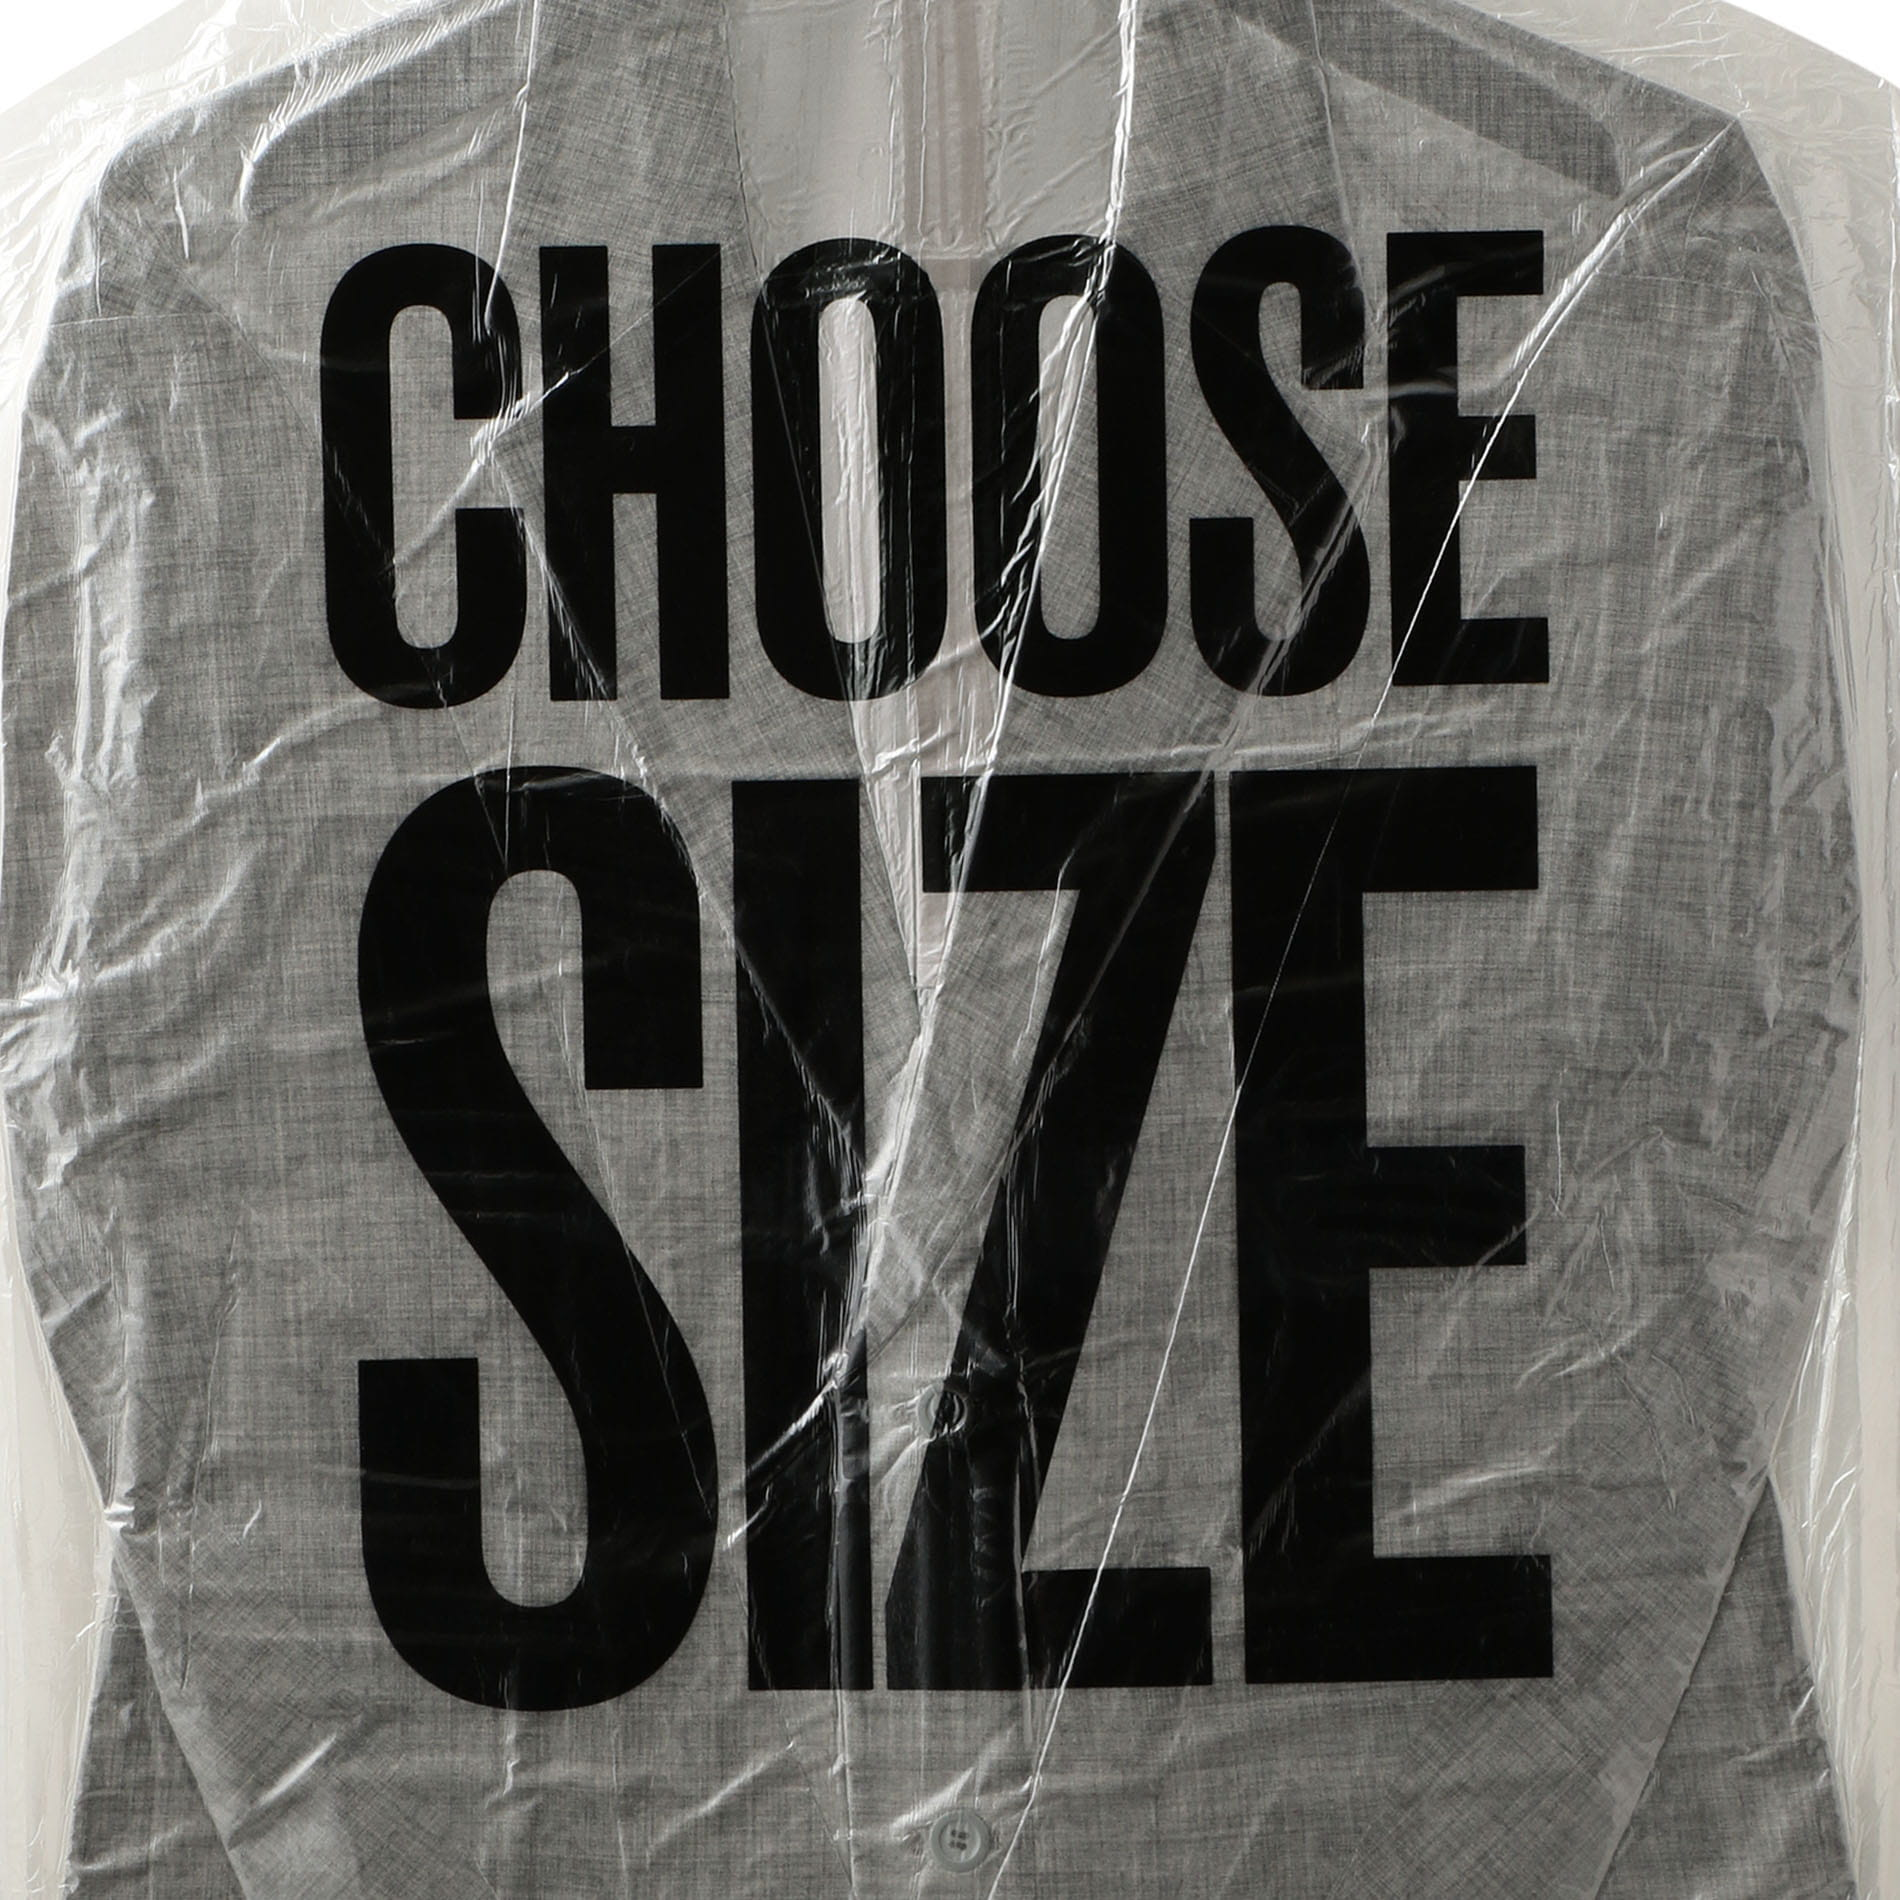 【doublet】MEN 2D PACKAGED 3D CUTTING JACKET SAYS SLOGAN